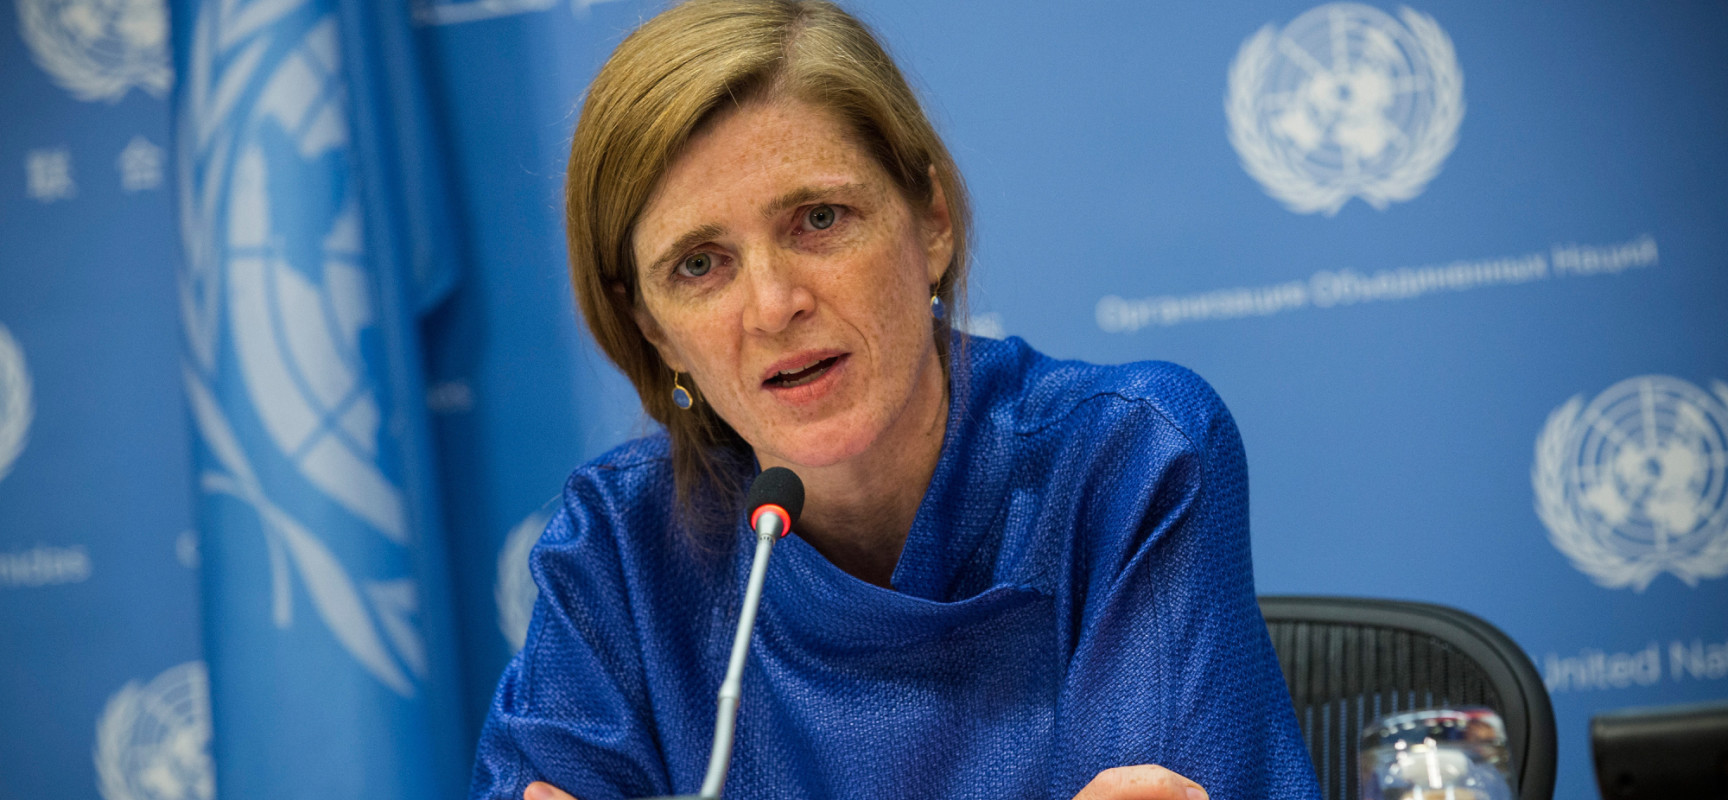 NEW YORK, NY - SEPTEMBER 03: United States Ambassador to the United Nations (U.N.) Samantha Power holds a press conference on September 3, 2014 in New York City. Power answered questions on foreign extremist Islamist fighters joining ISIS in Syria and Iraq and the most recent Israeli-Palestinian peace deal, amongst other topics. (Photo by Andrew Burton/Getty Images)